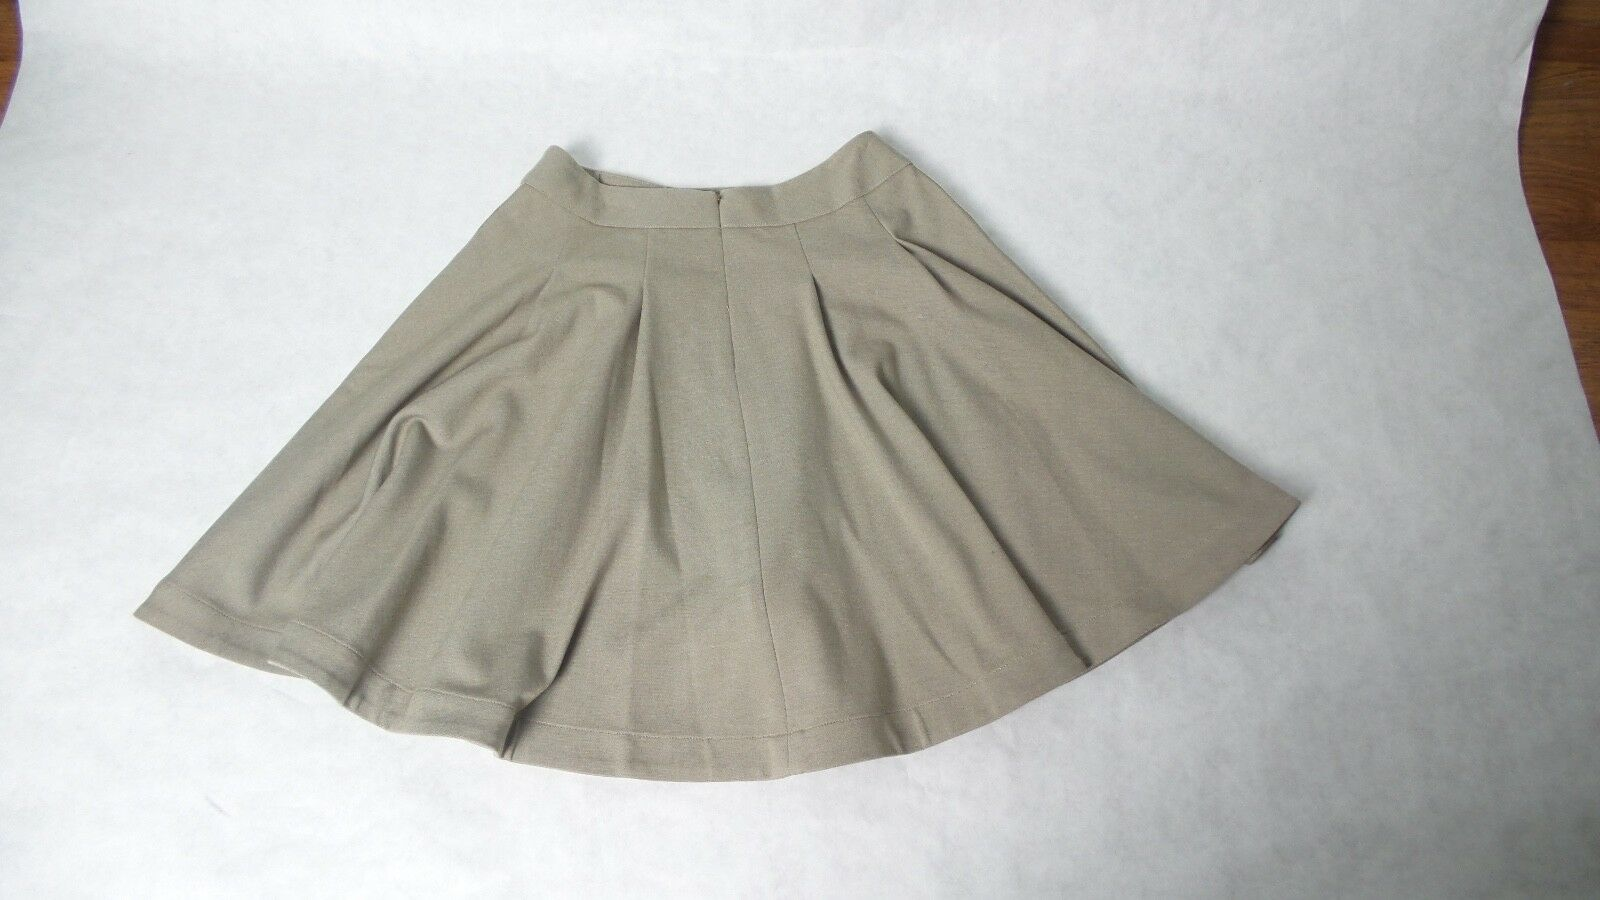 YIGAL AZROUËL New York Beige Swing Skirt Size 0 Made in the USA